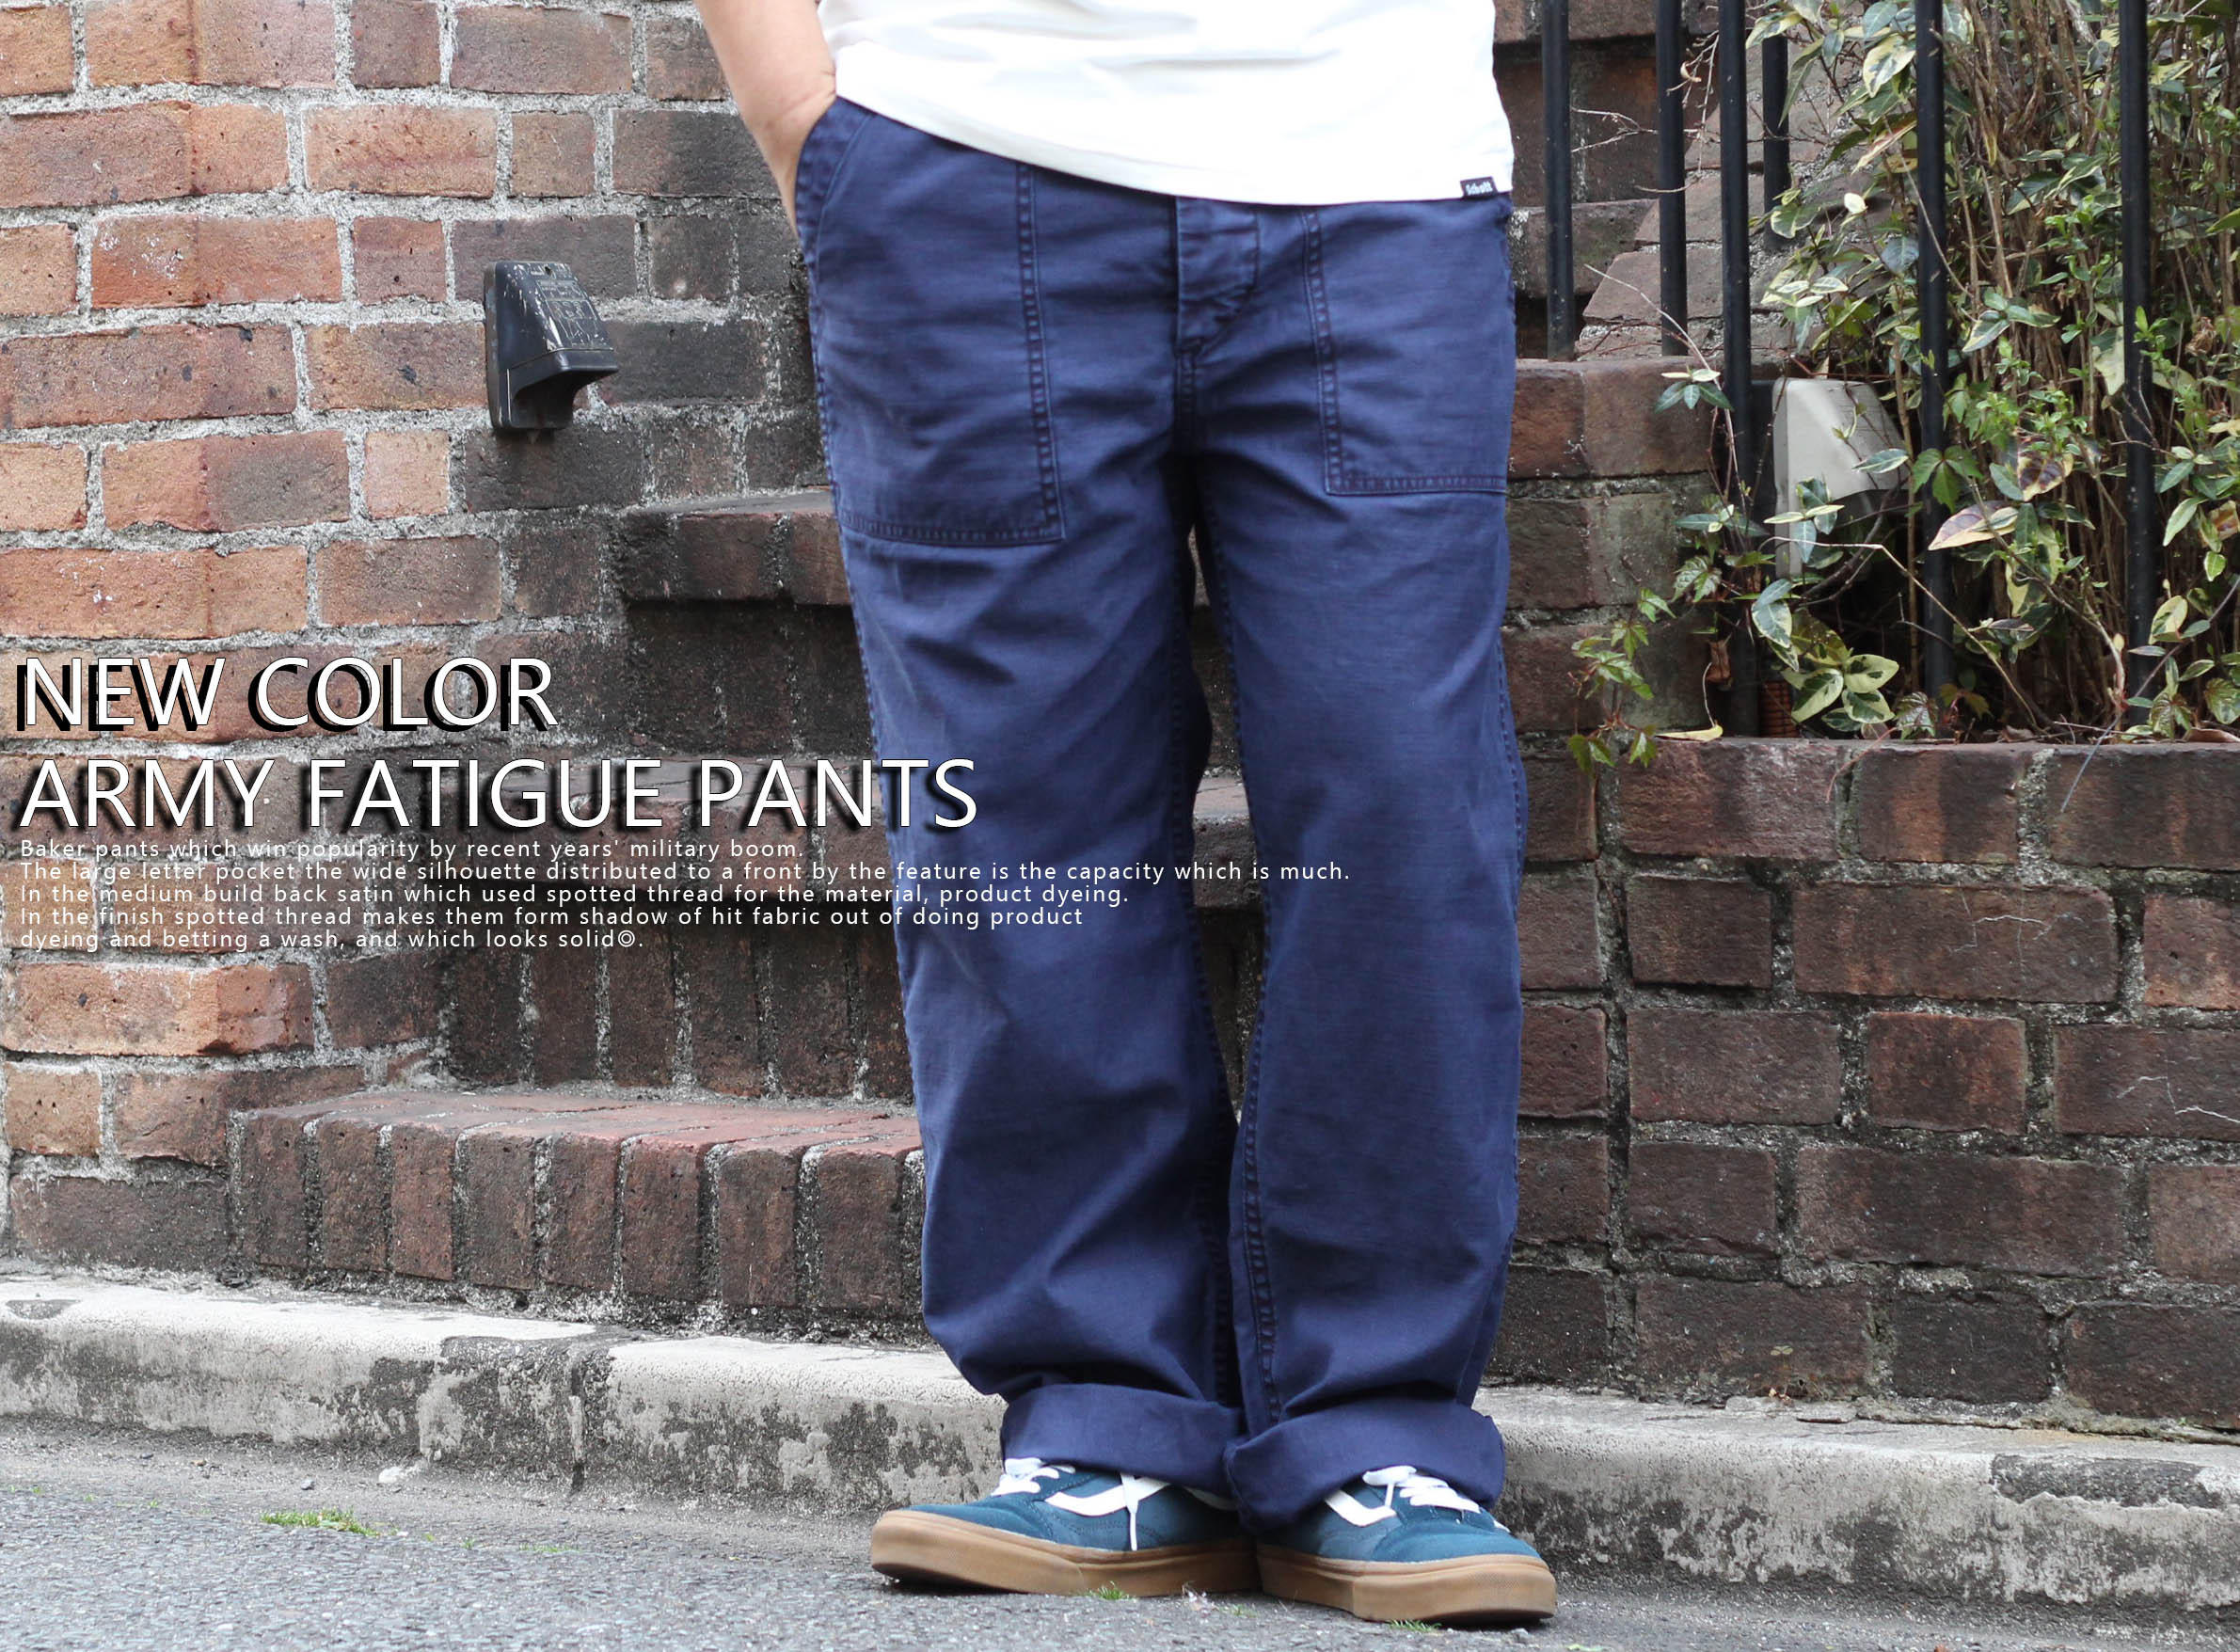 【Schott】NEW COLOR ARMY FATIGUE PANTS